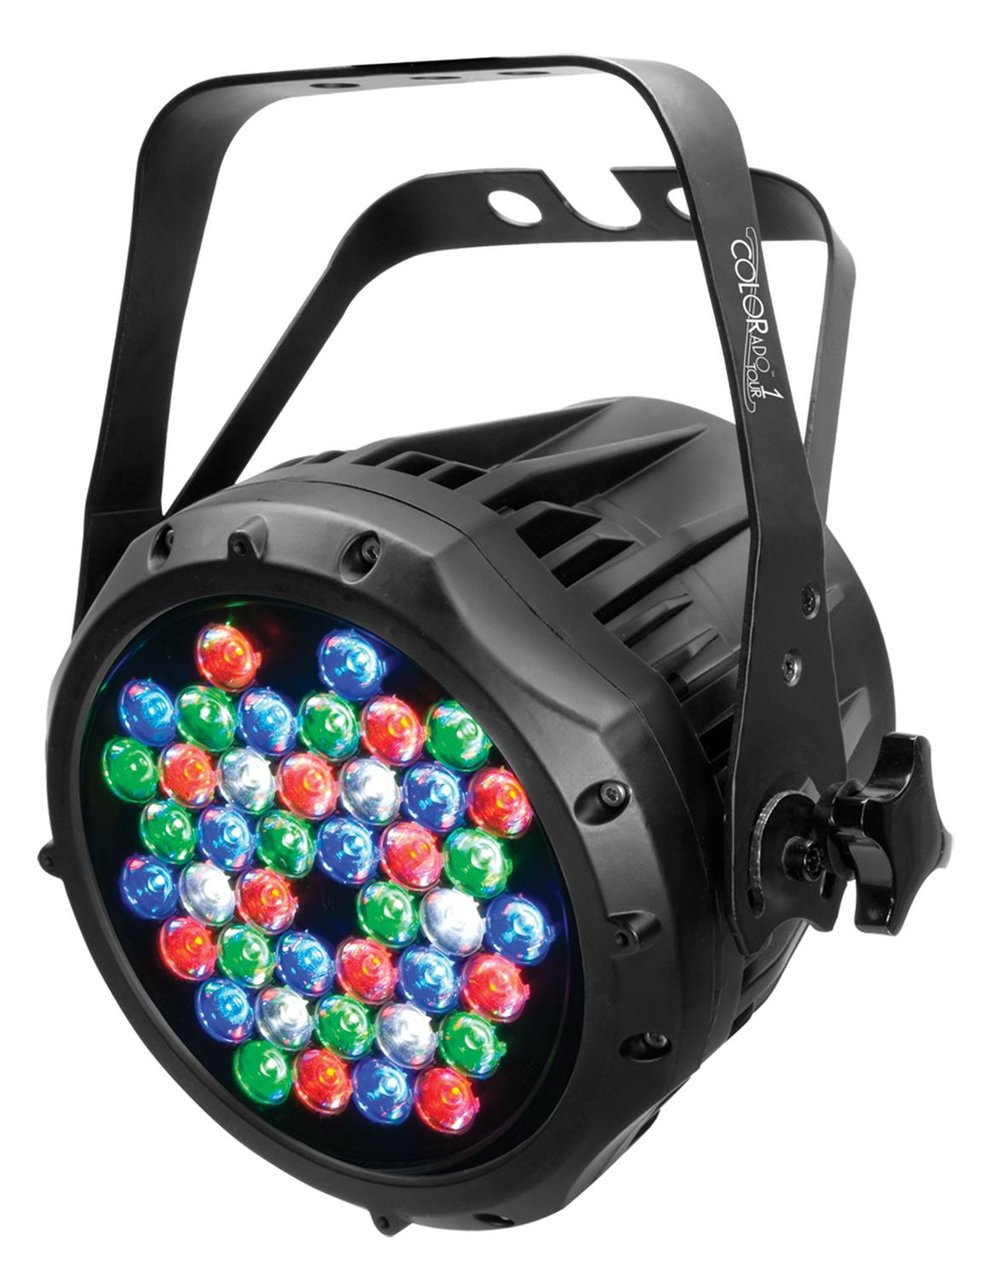 Chauvet COLORado 1-Tour